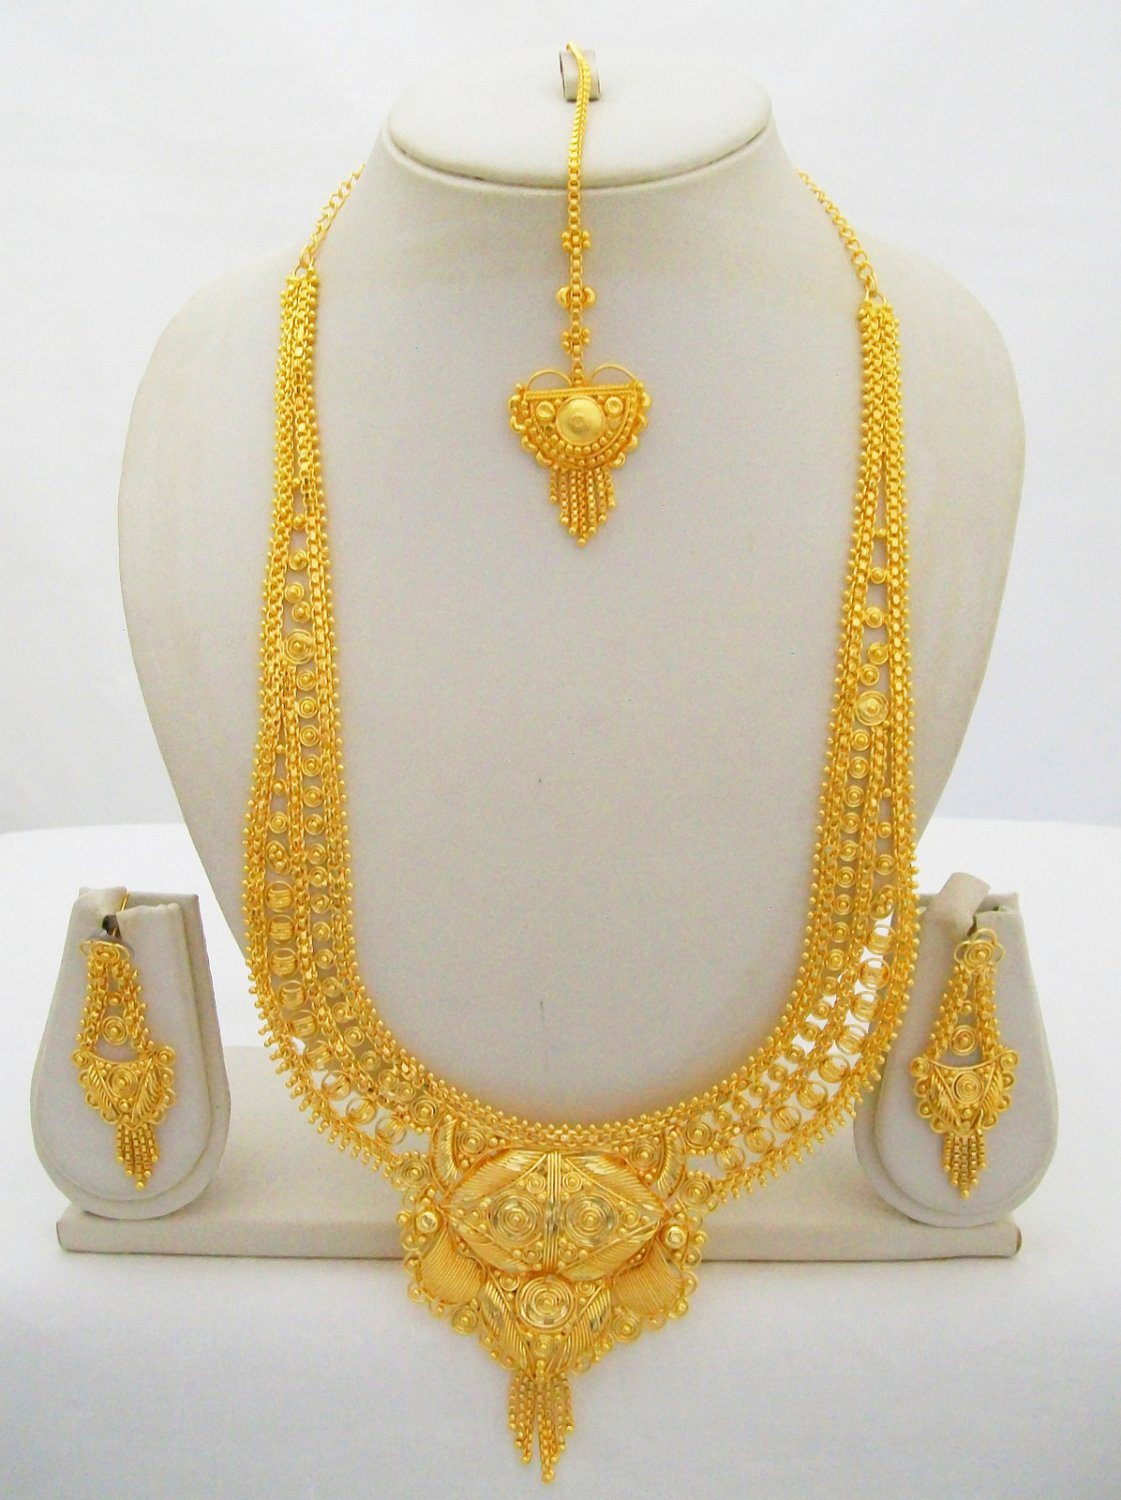 Gold Plated Indian Rani Haar Necklace Bridal Long Filigree Ethnic Jewelry Set